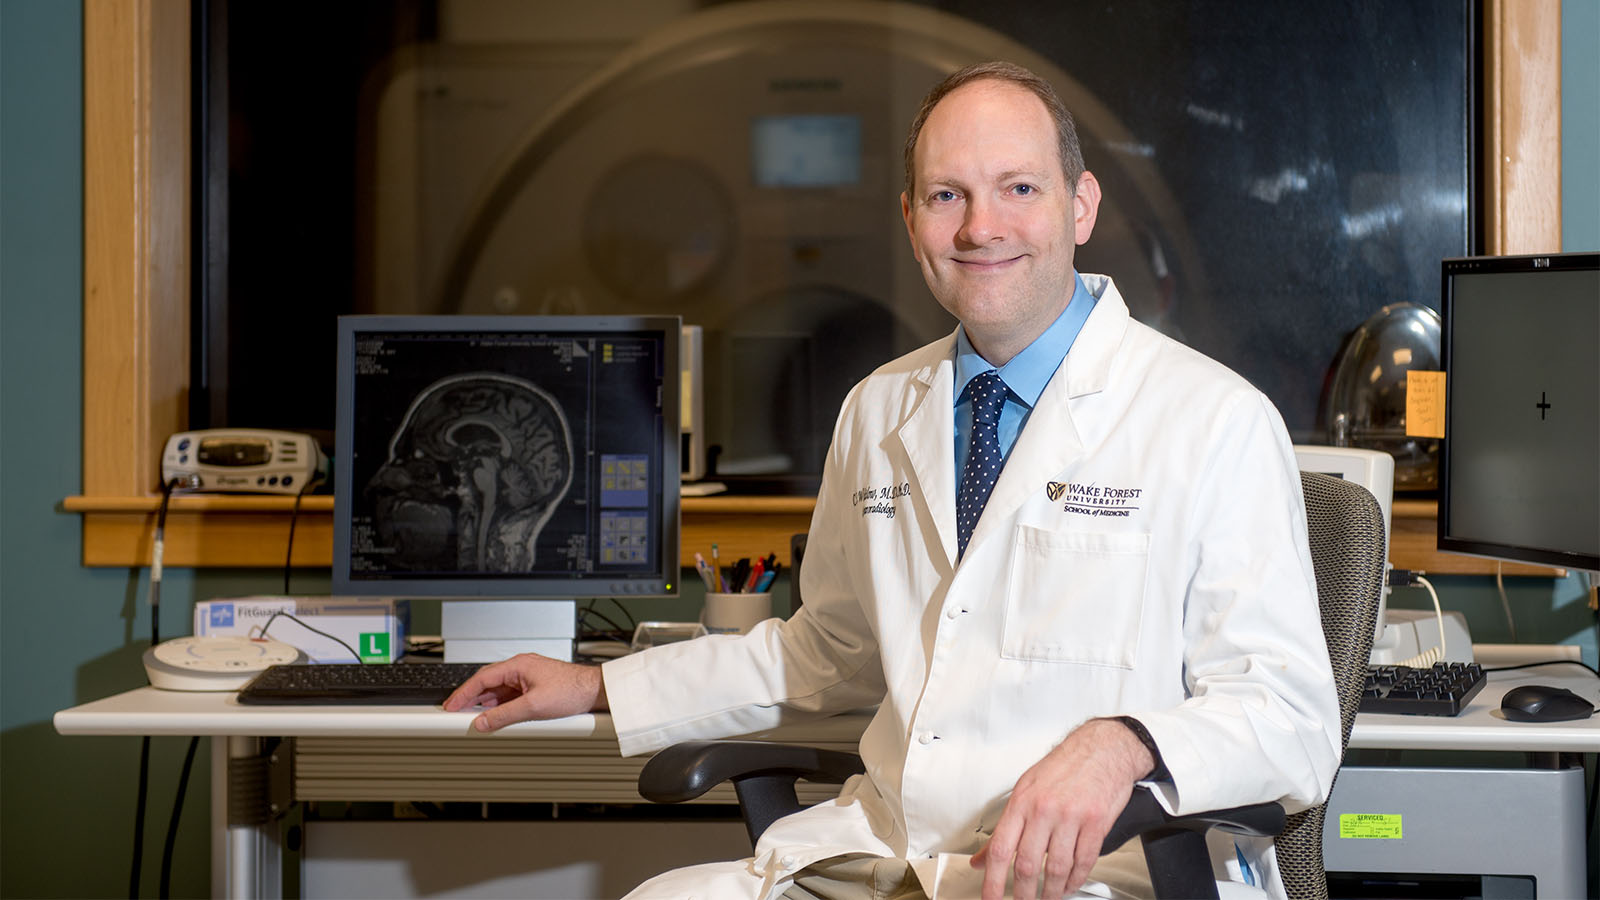 Christopher Whitlow, MD, PhD